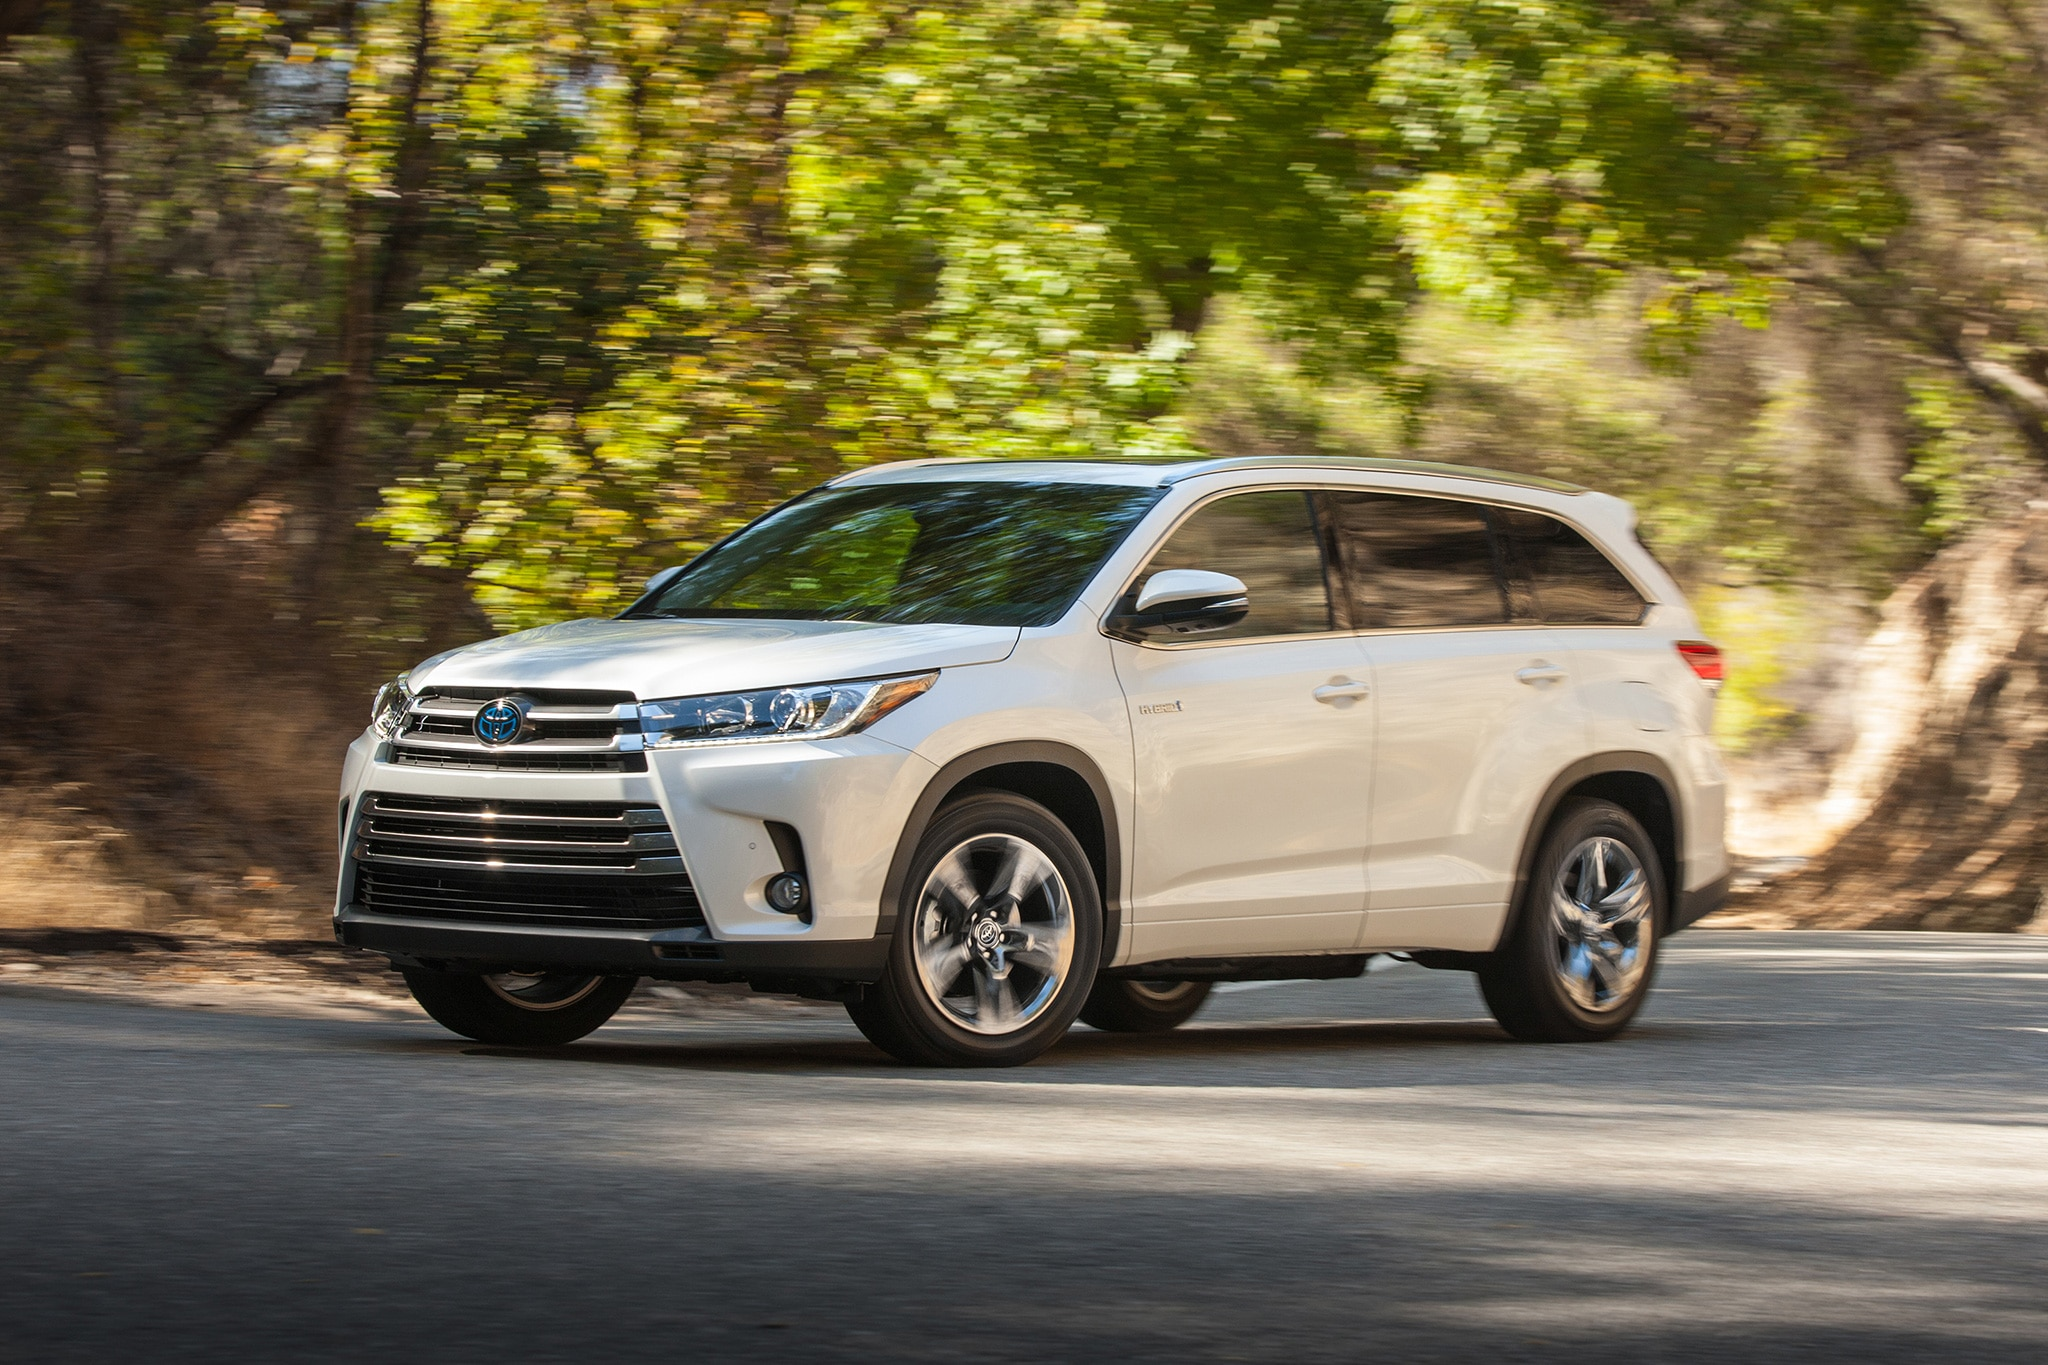 2017 Toyota Highlander Receives Updates for the High Road